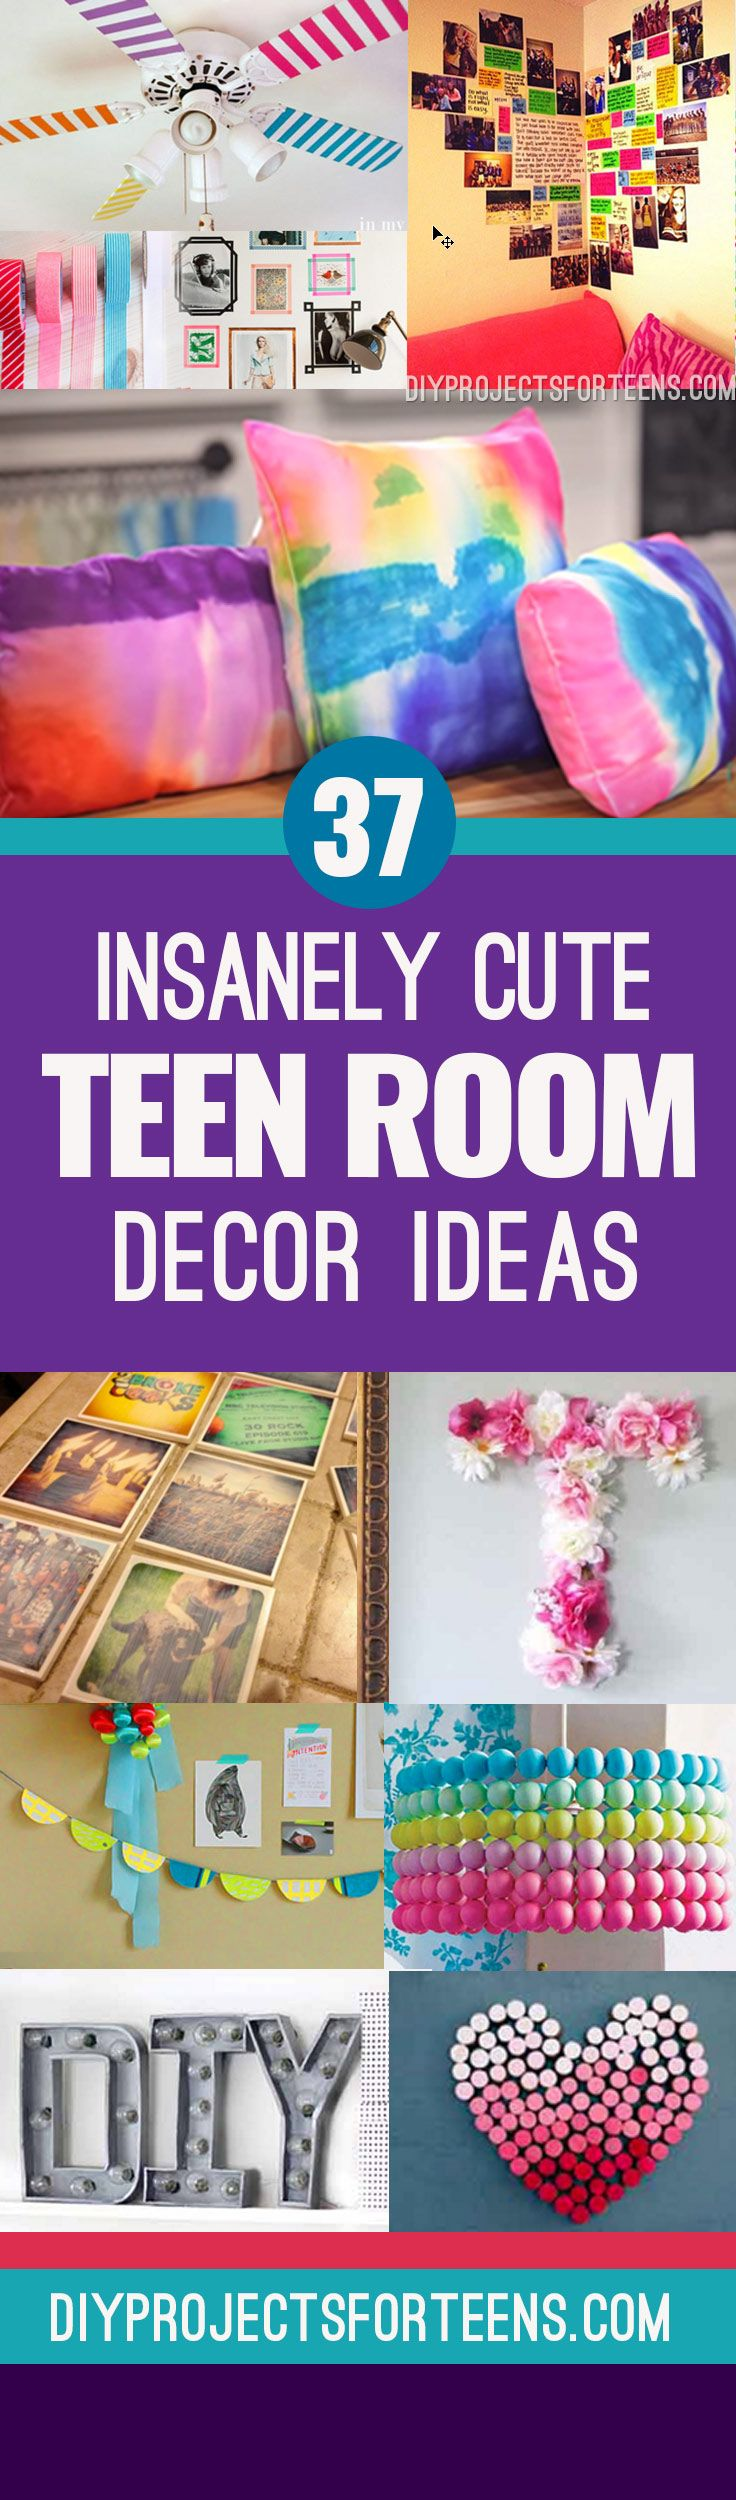 Cute Diy Room Decor Ideas For Teens Best Diy Room Decor Ideas